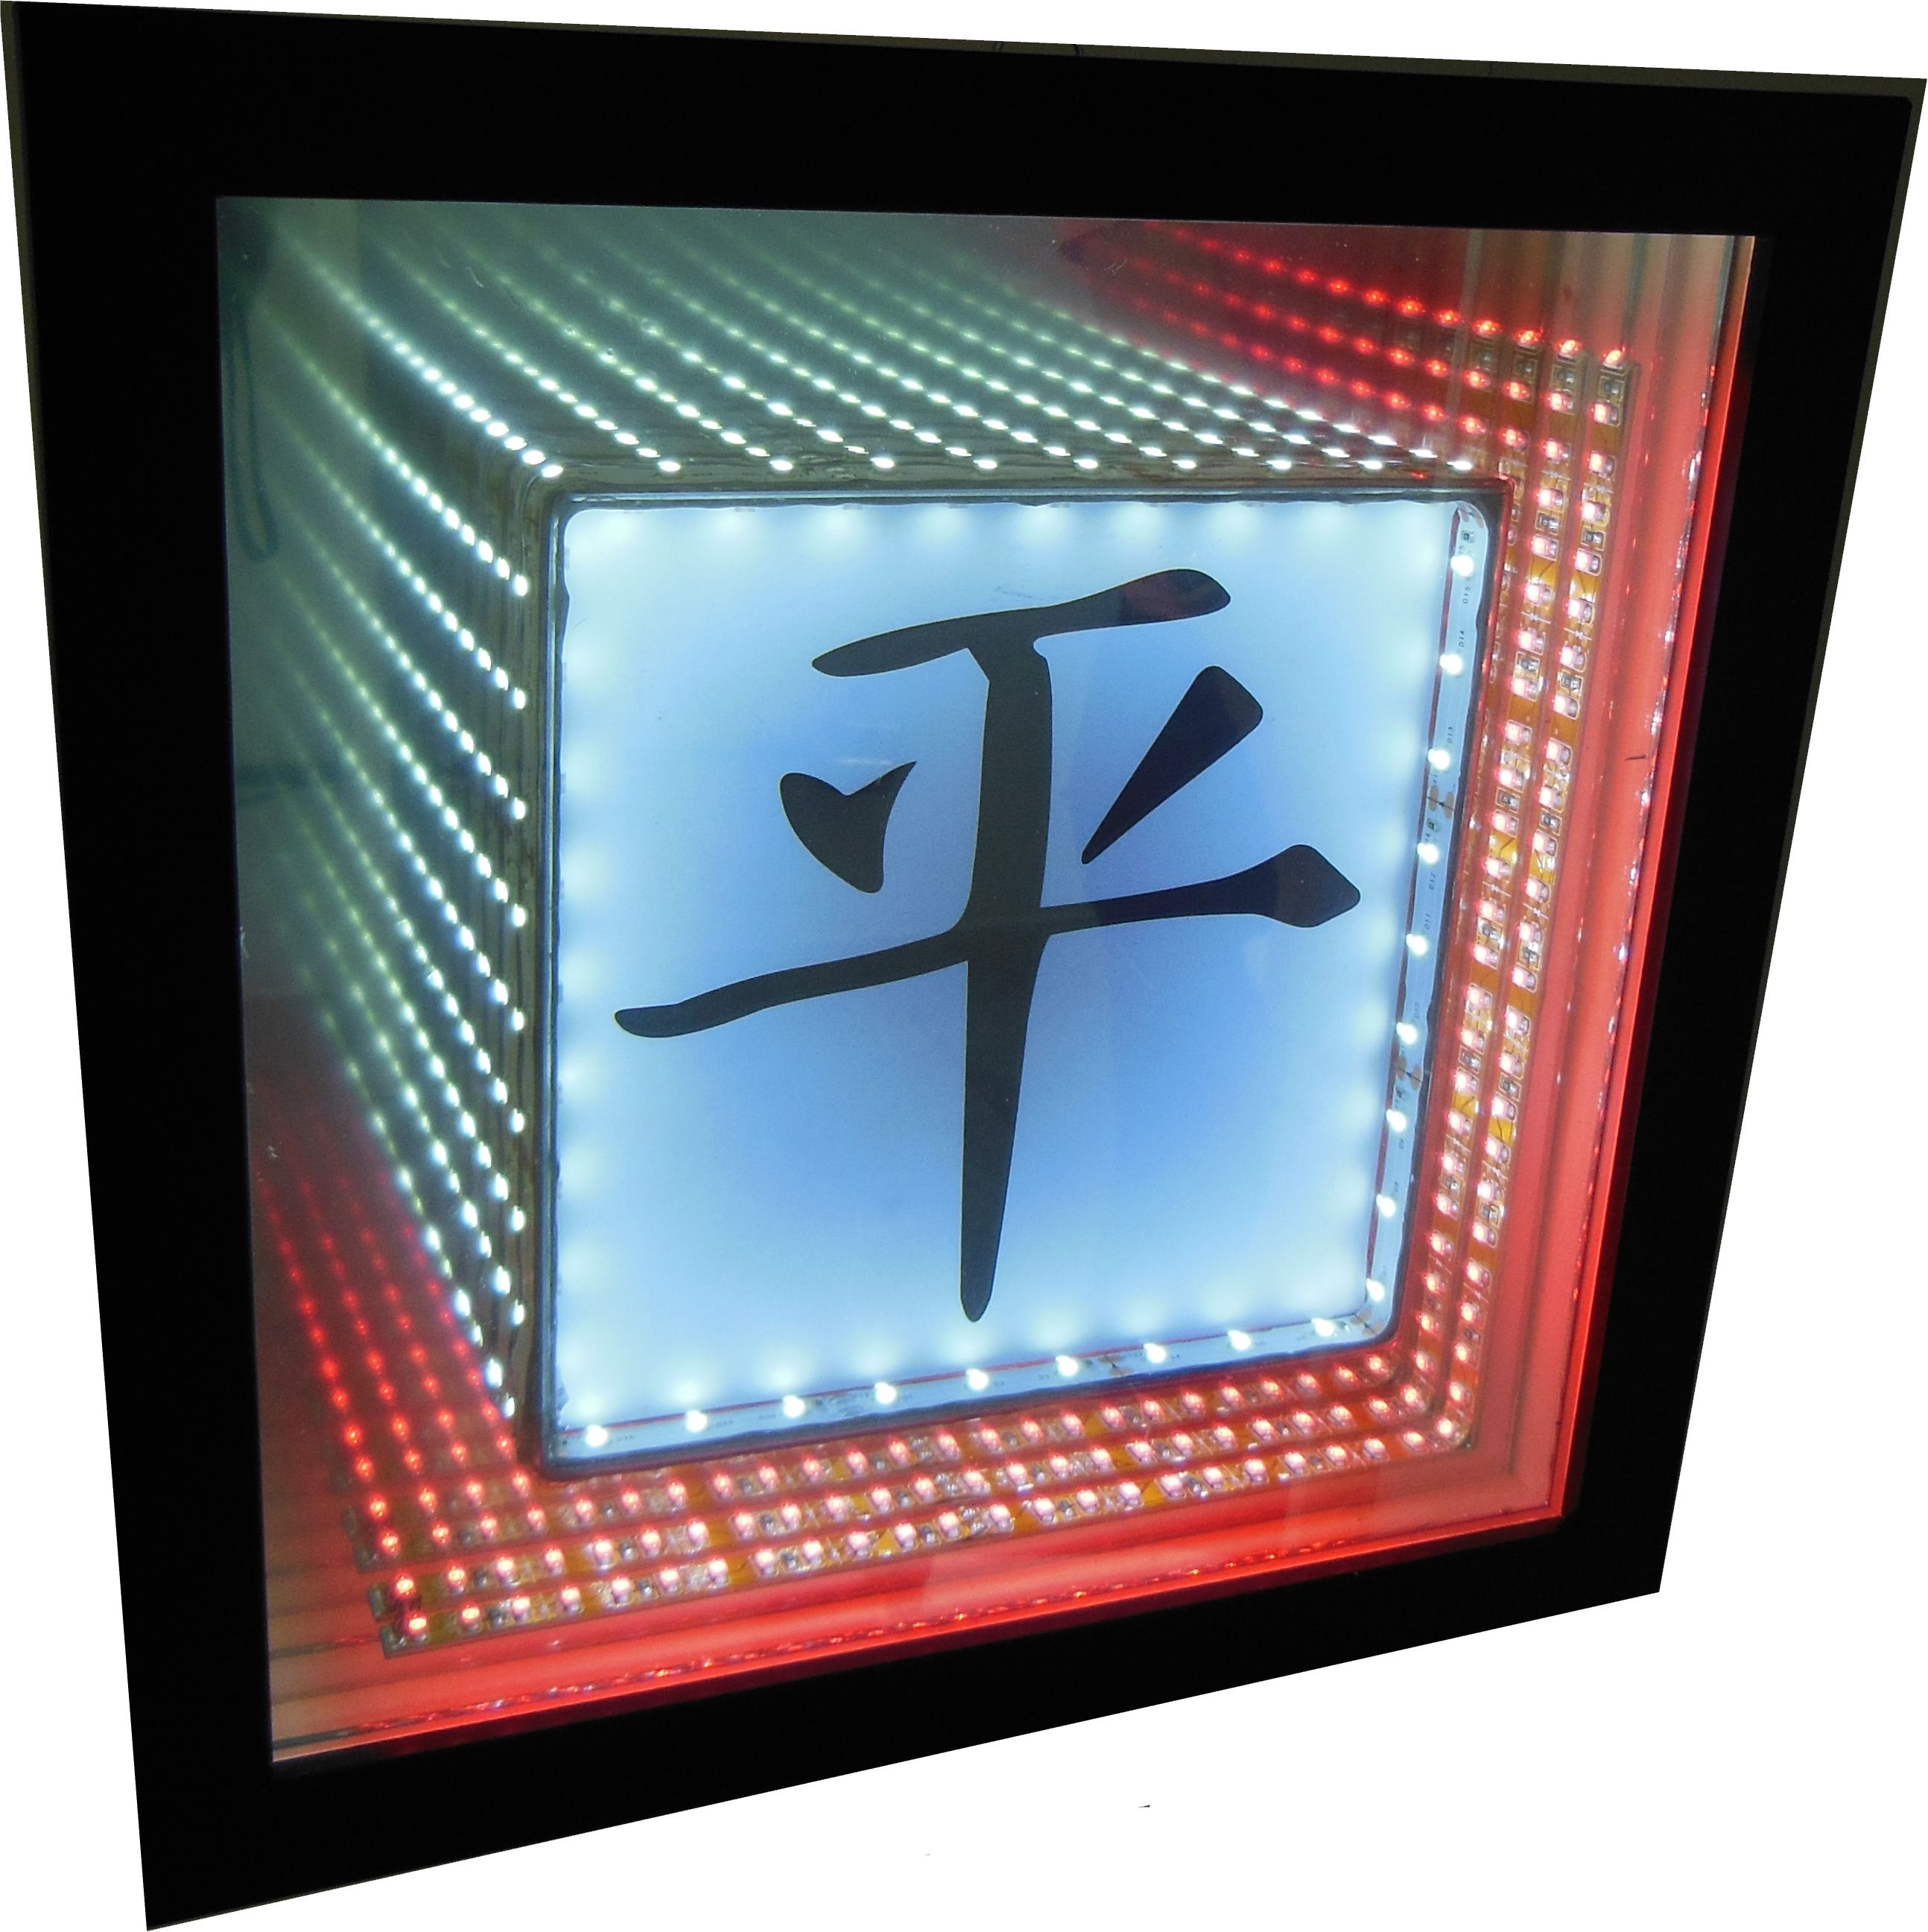 Infinity led frame ideograma paz symtronic infinity led frame ideograma paz symtronic jeuxipadfo Image collections